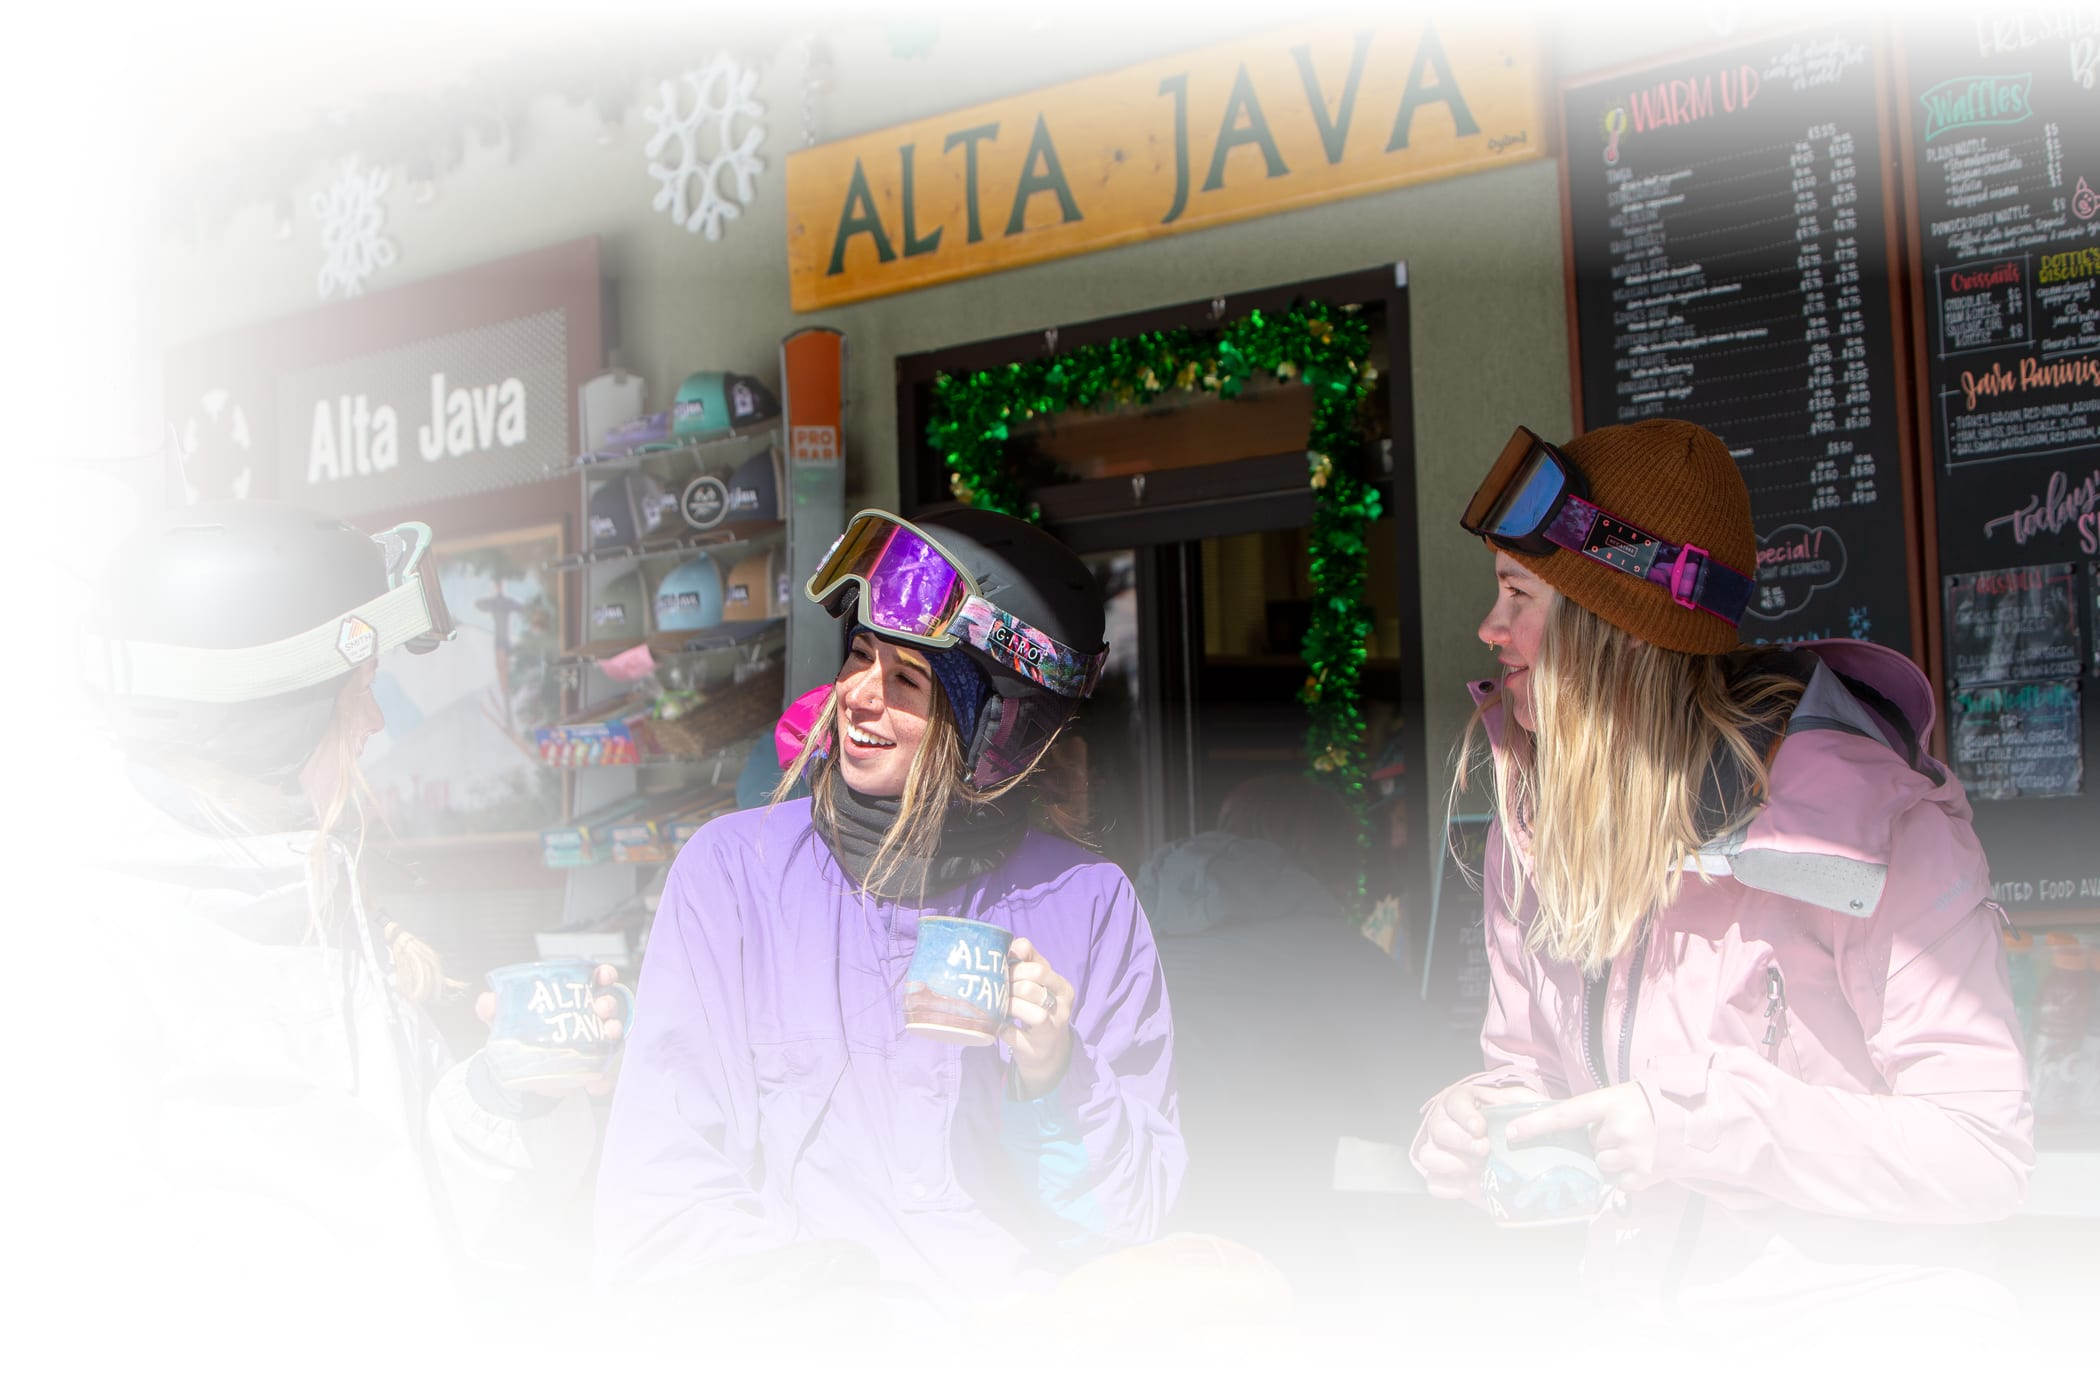 woman smiling in the Alta Java window